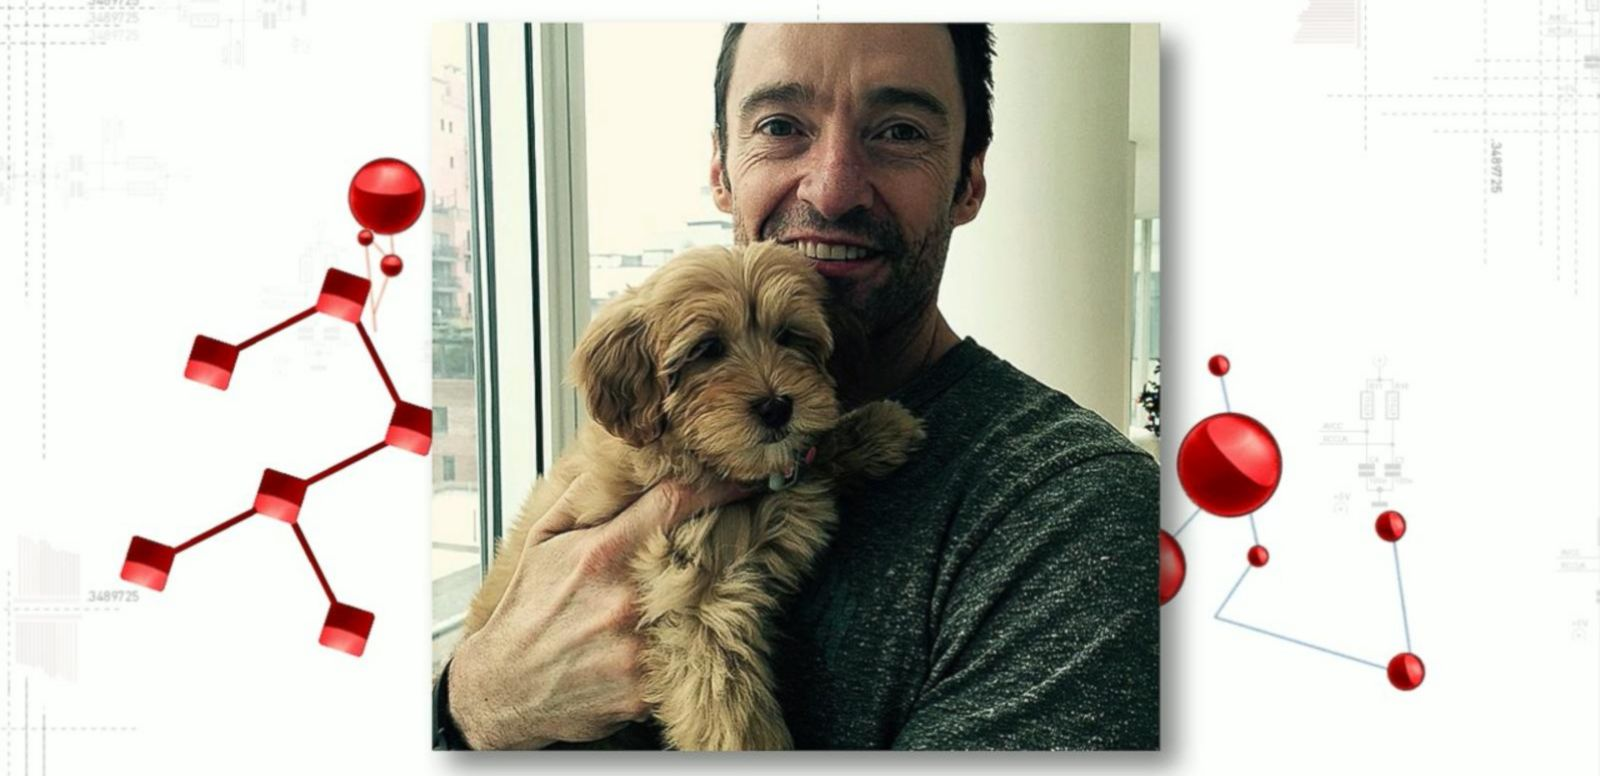 VIDEO: Huge Jackman Celebrates Christmas With New Puppy